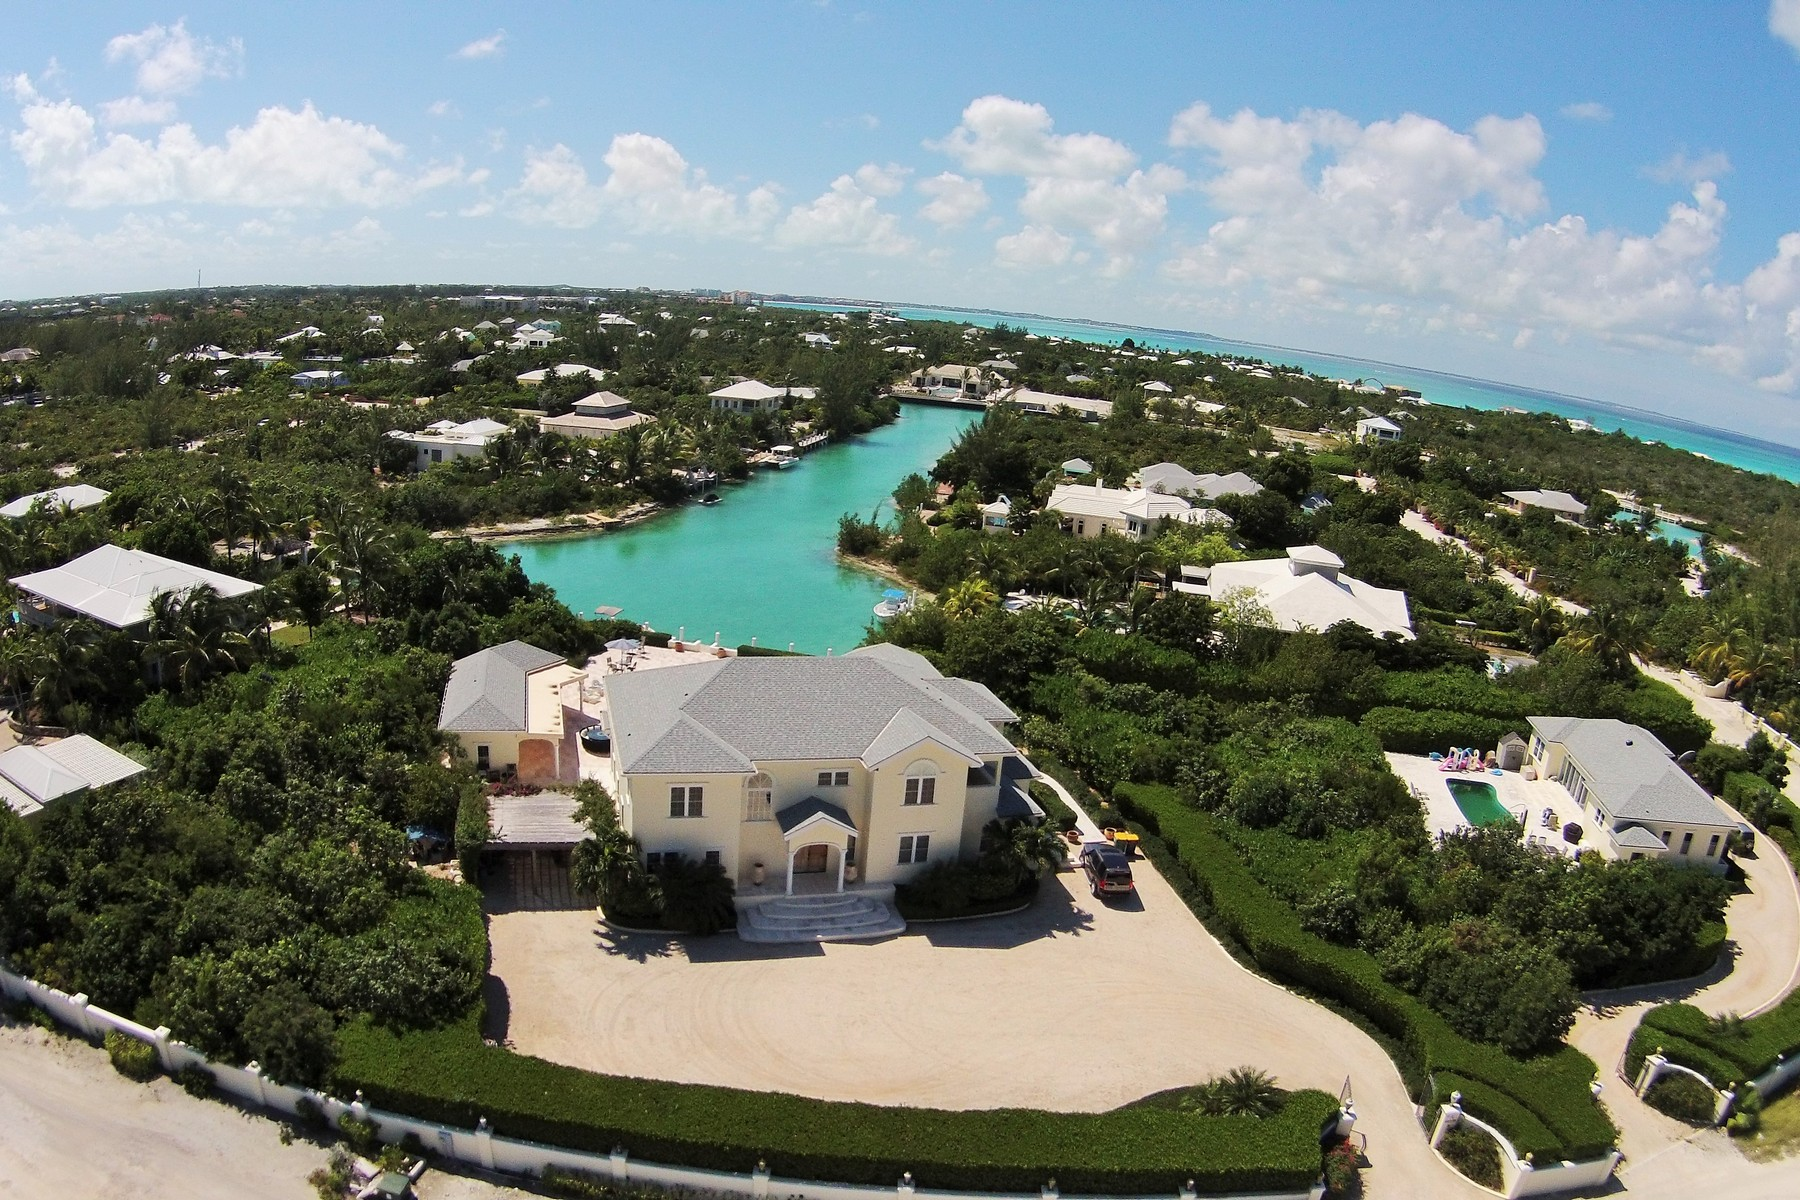 Single Family Home for Sale at Rafters Leeward, Providenciales Turks And Caicos Islands